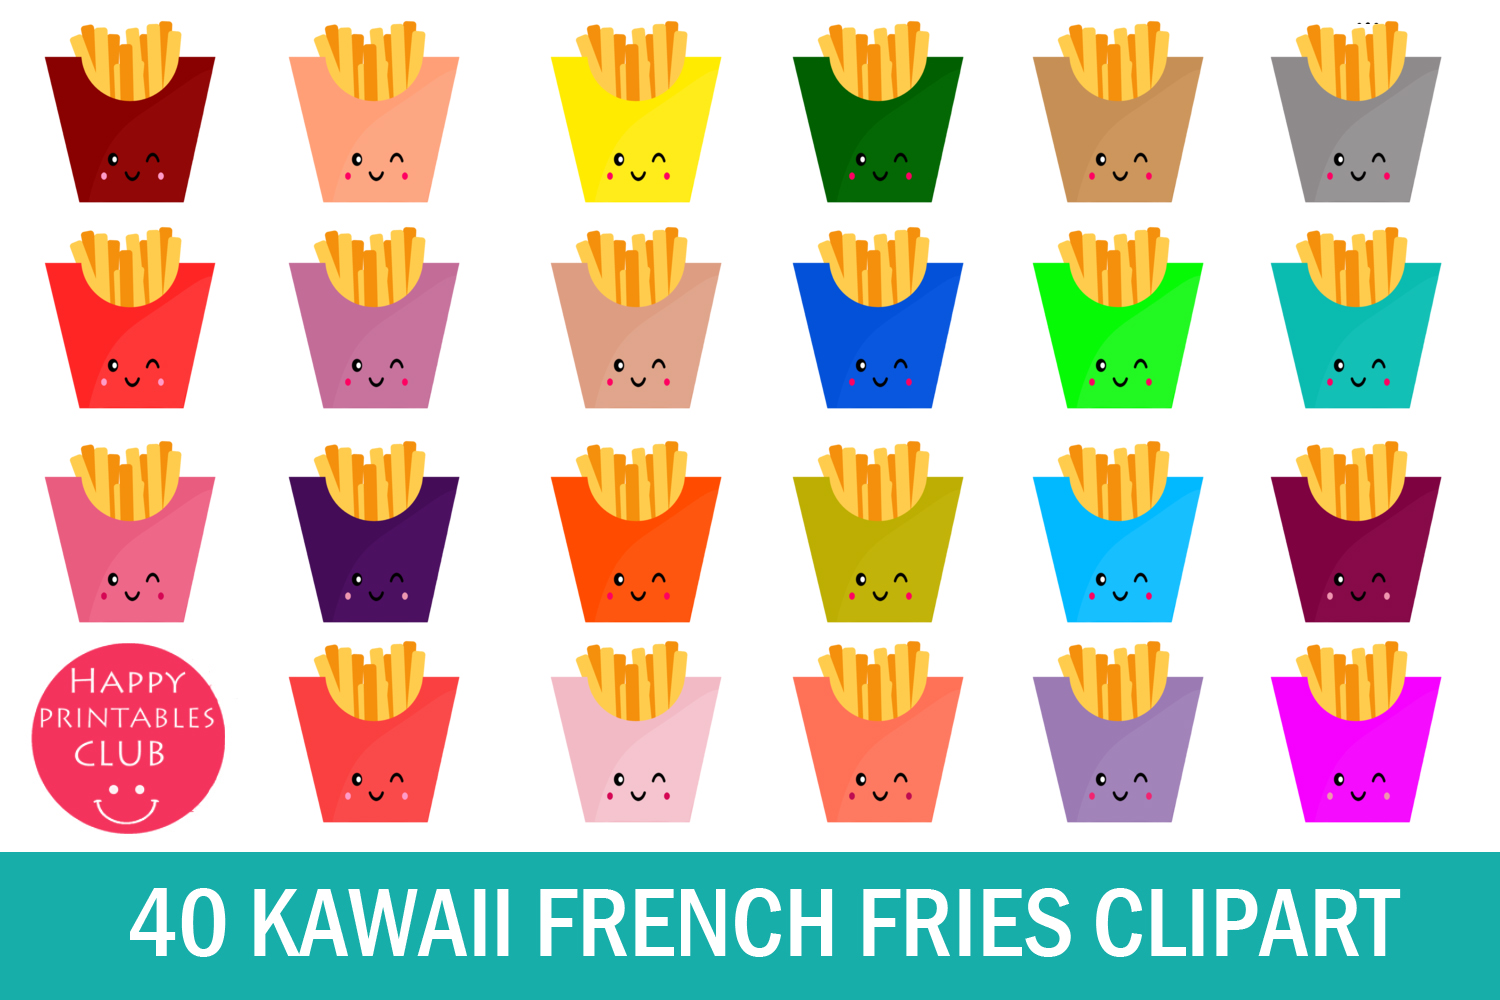 40 Kawaii French Fries Clipart- French Fries Clipart Images example image 1